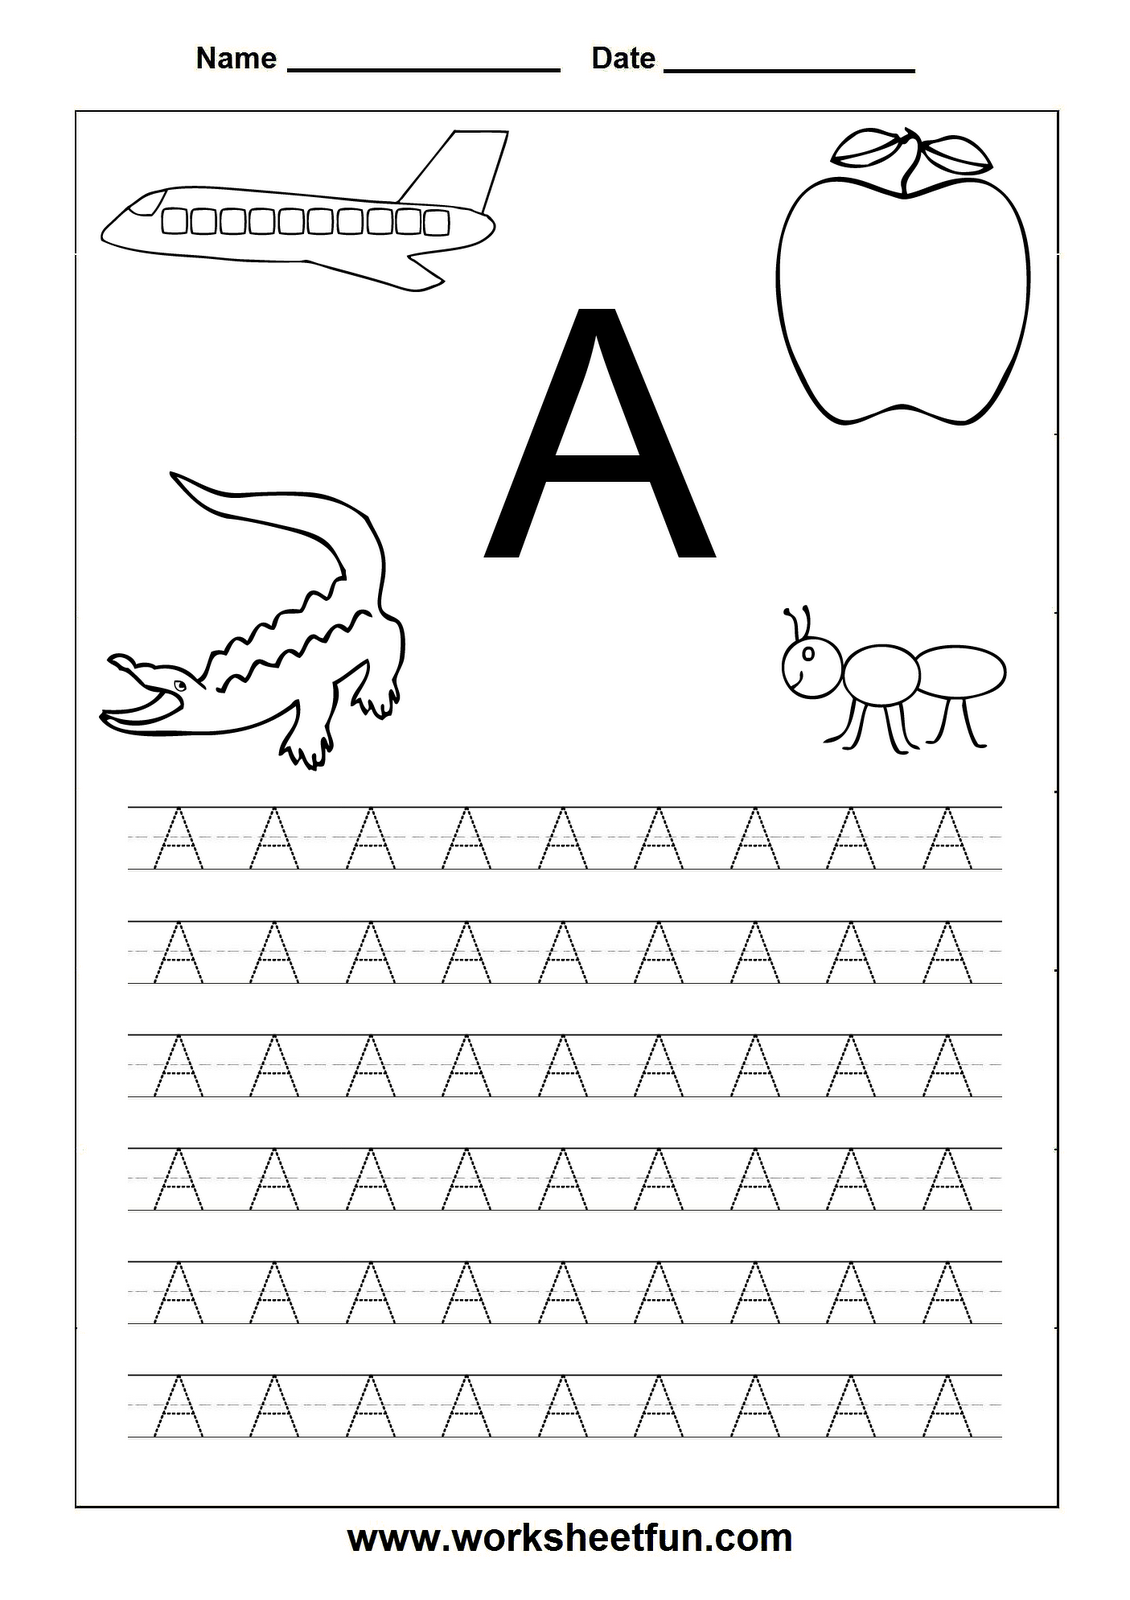 Worksheet Tracing Letter A tracing letter a worksheet davezan 1000 images about letters on pinterest handwriting worksheets